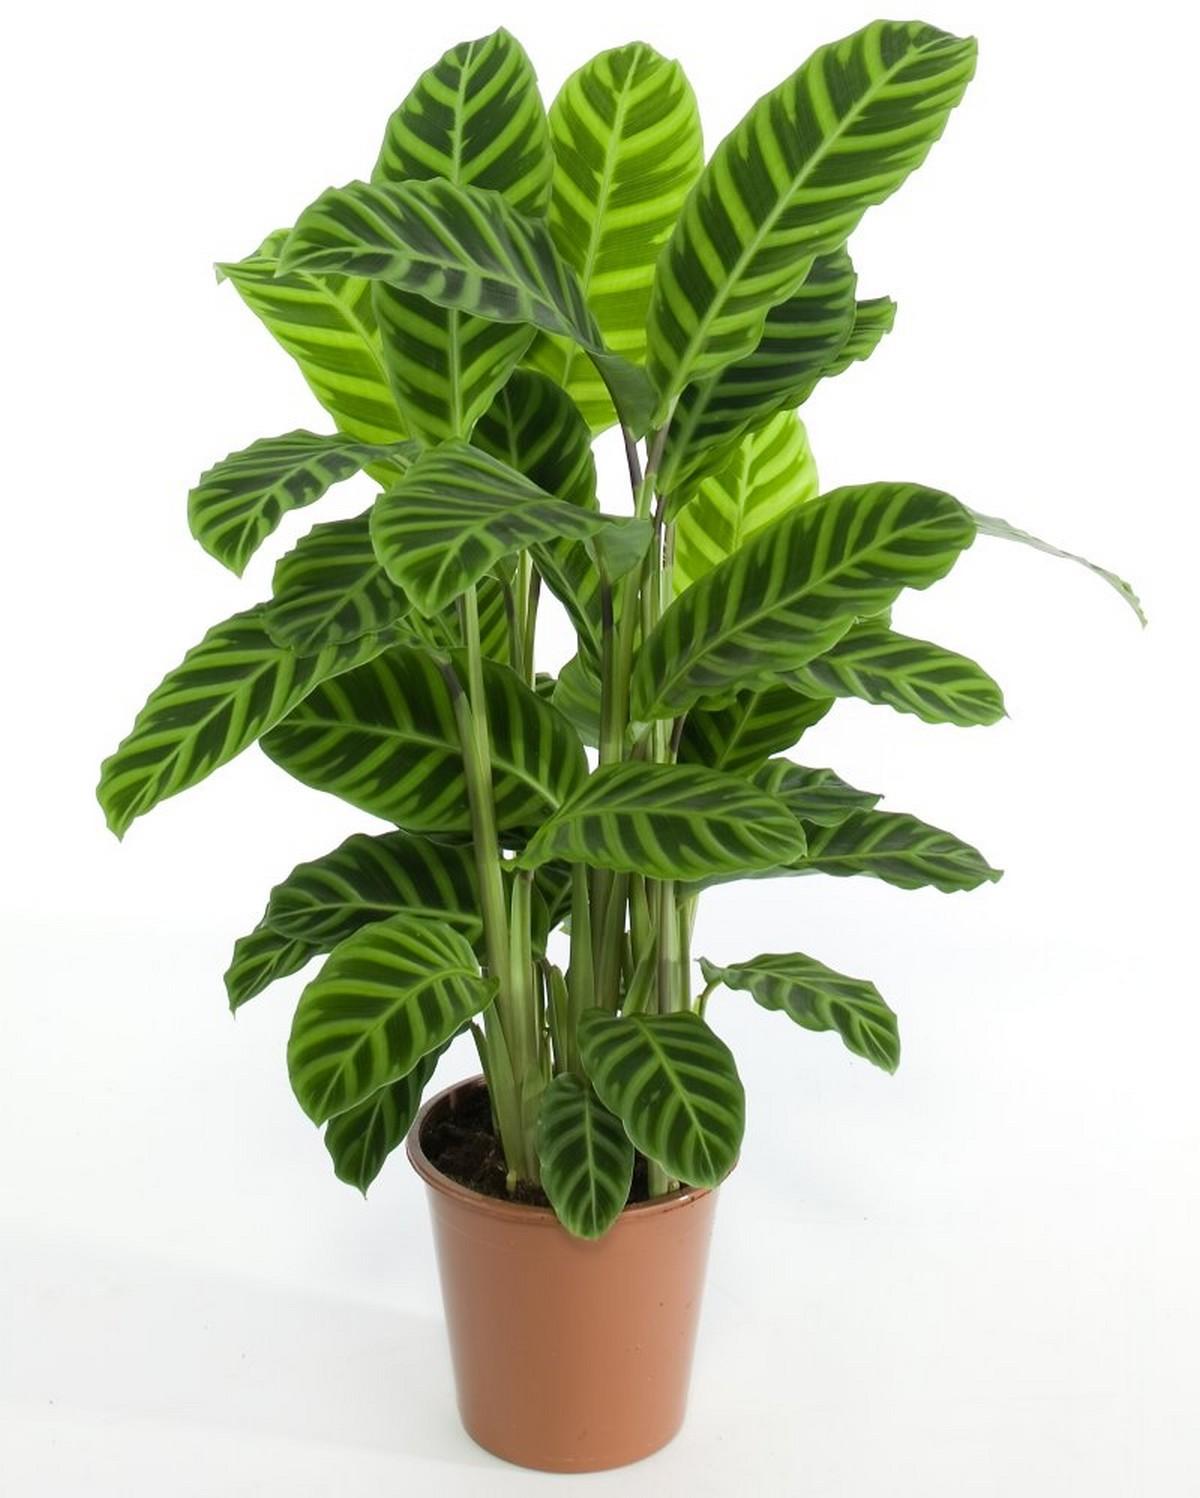 Gellerts the joy of plants calathea - Planta de jade cuidados ...